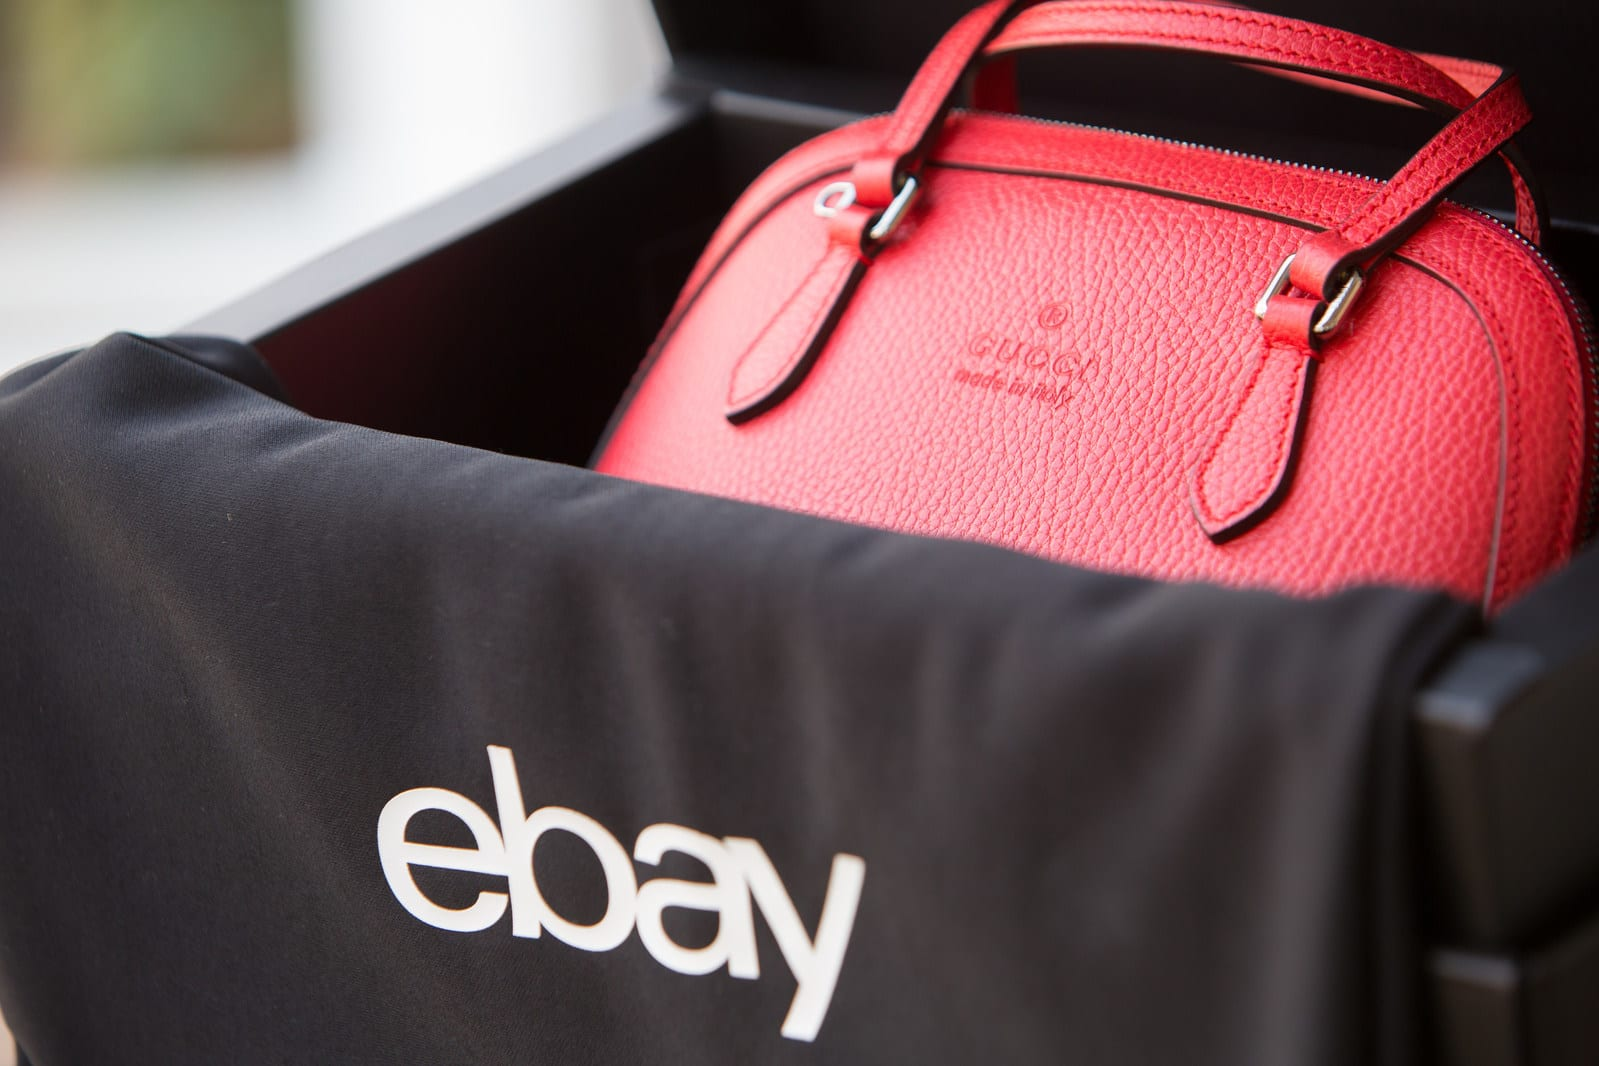 bb23ef1b1e2a eBay will now verify luxury handbags sold on the site